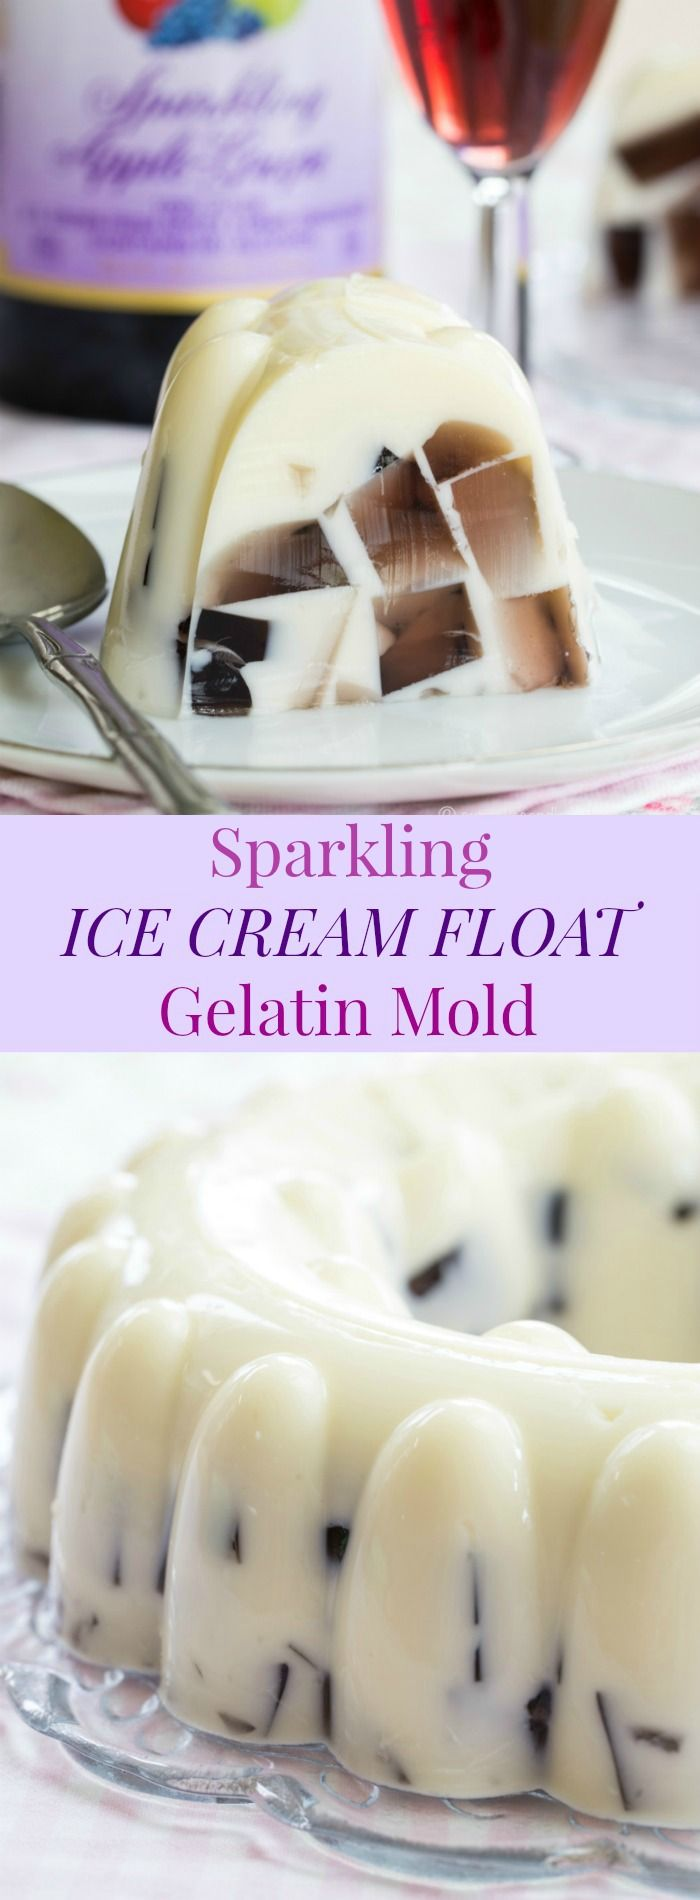 Sparkling Ice Cream Float Gelatin Mold - a simple but impressive no-bake dessert made with your favorite @martinellisco Sparkling Cider or Juice #ad